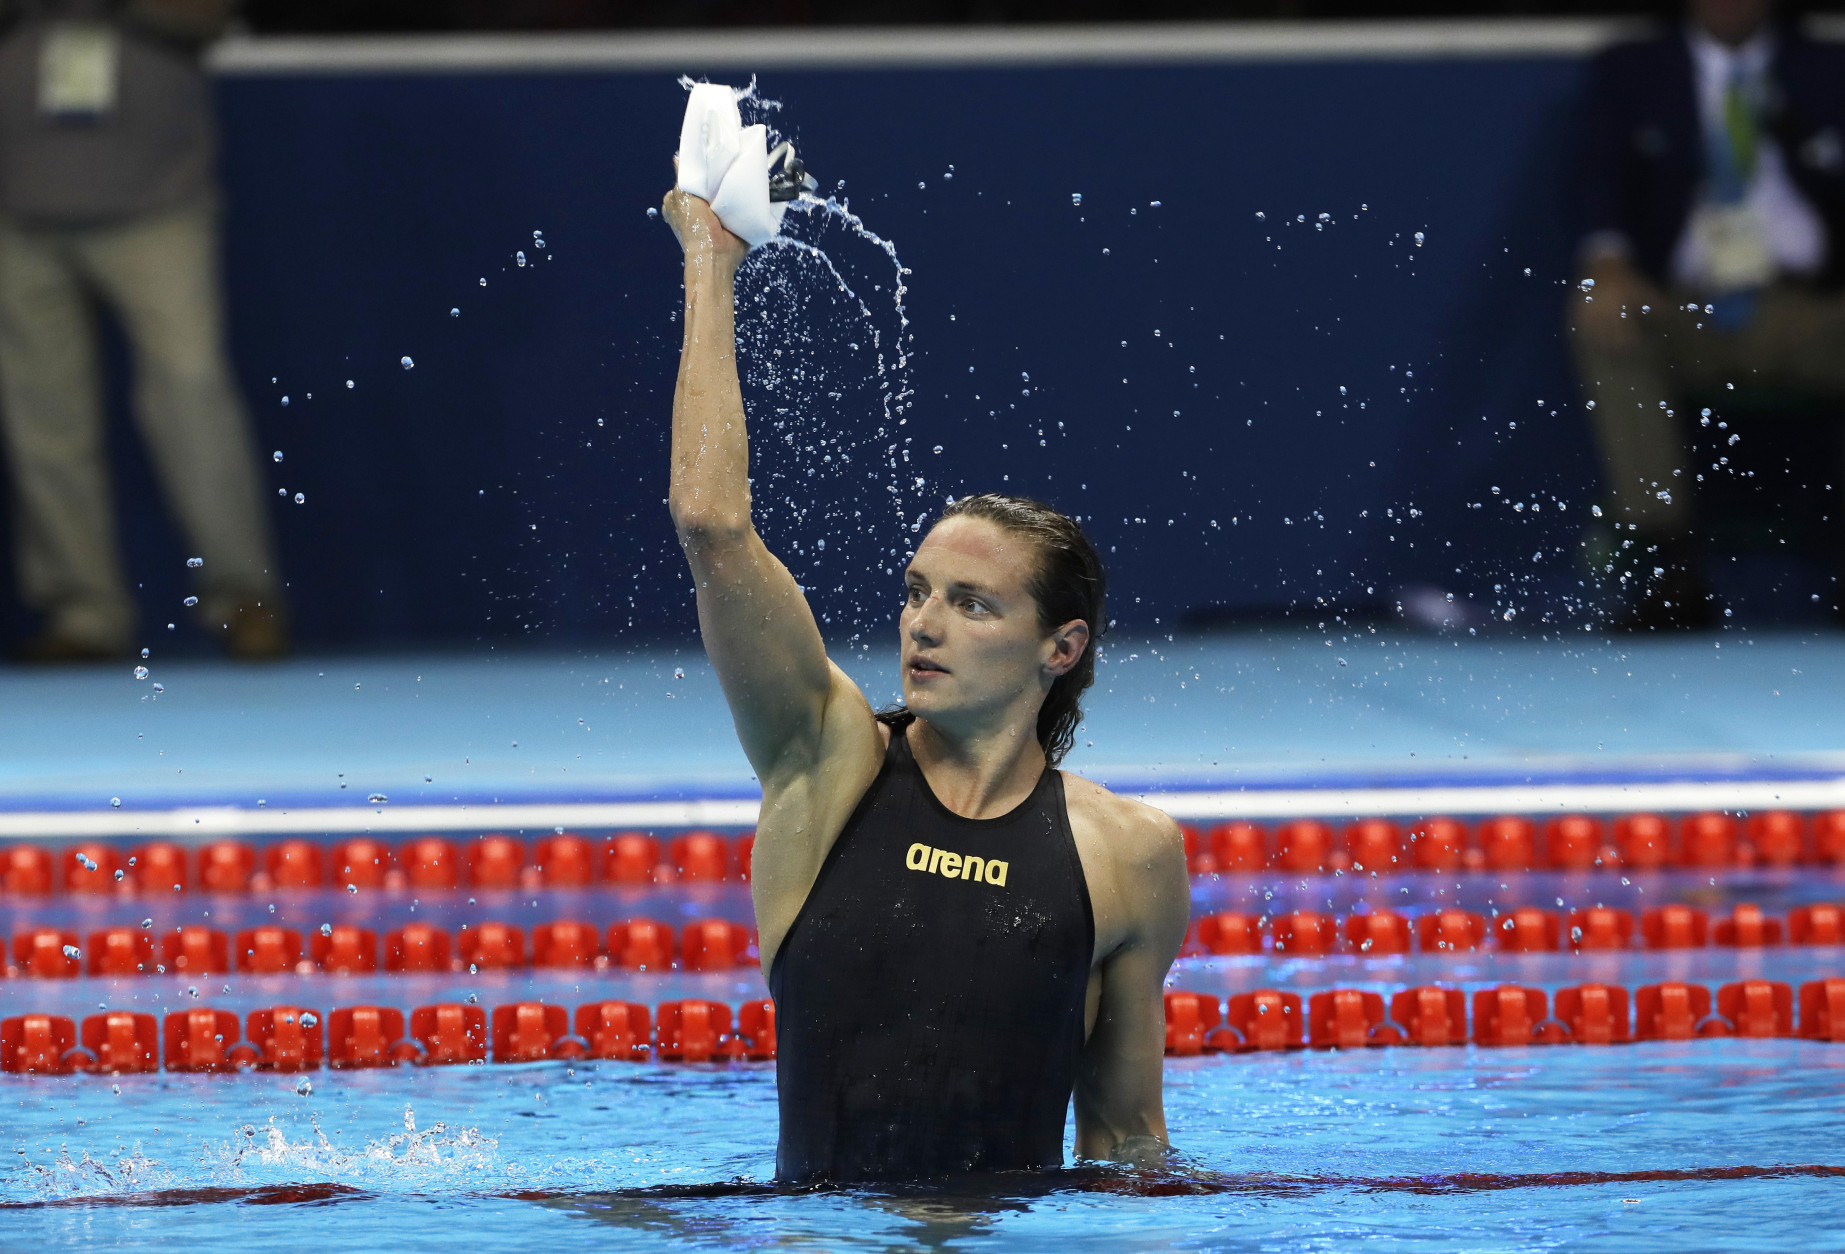 Hungary's Katinka Hosszu celebrates after setting a new world record and winning the gold medal in the women's 400-meter individual medley final during the swimming competitions at the 2016 Summer Olympics, Saturday, Aug. 6, 2016, in Rio de Janeiro, Brazil. (AP Photo/David J. Phillip )